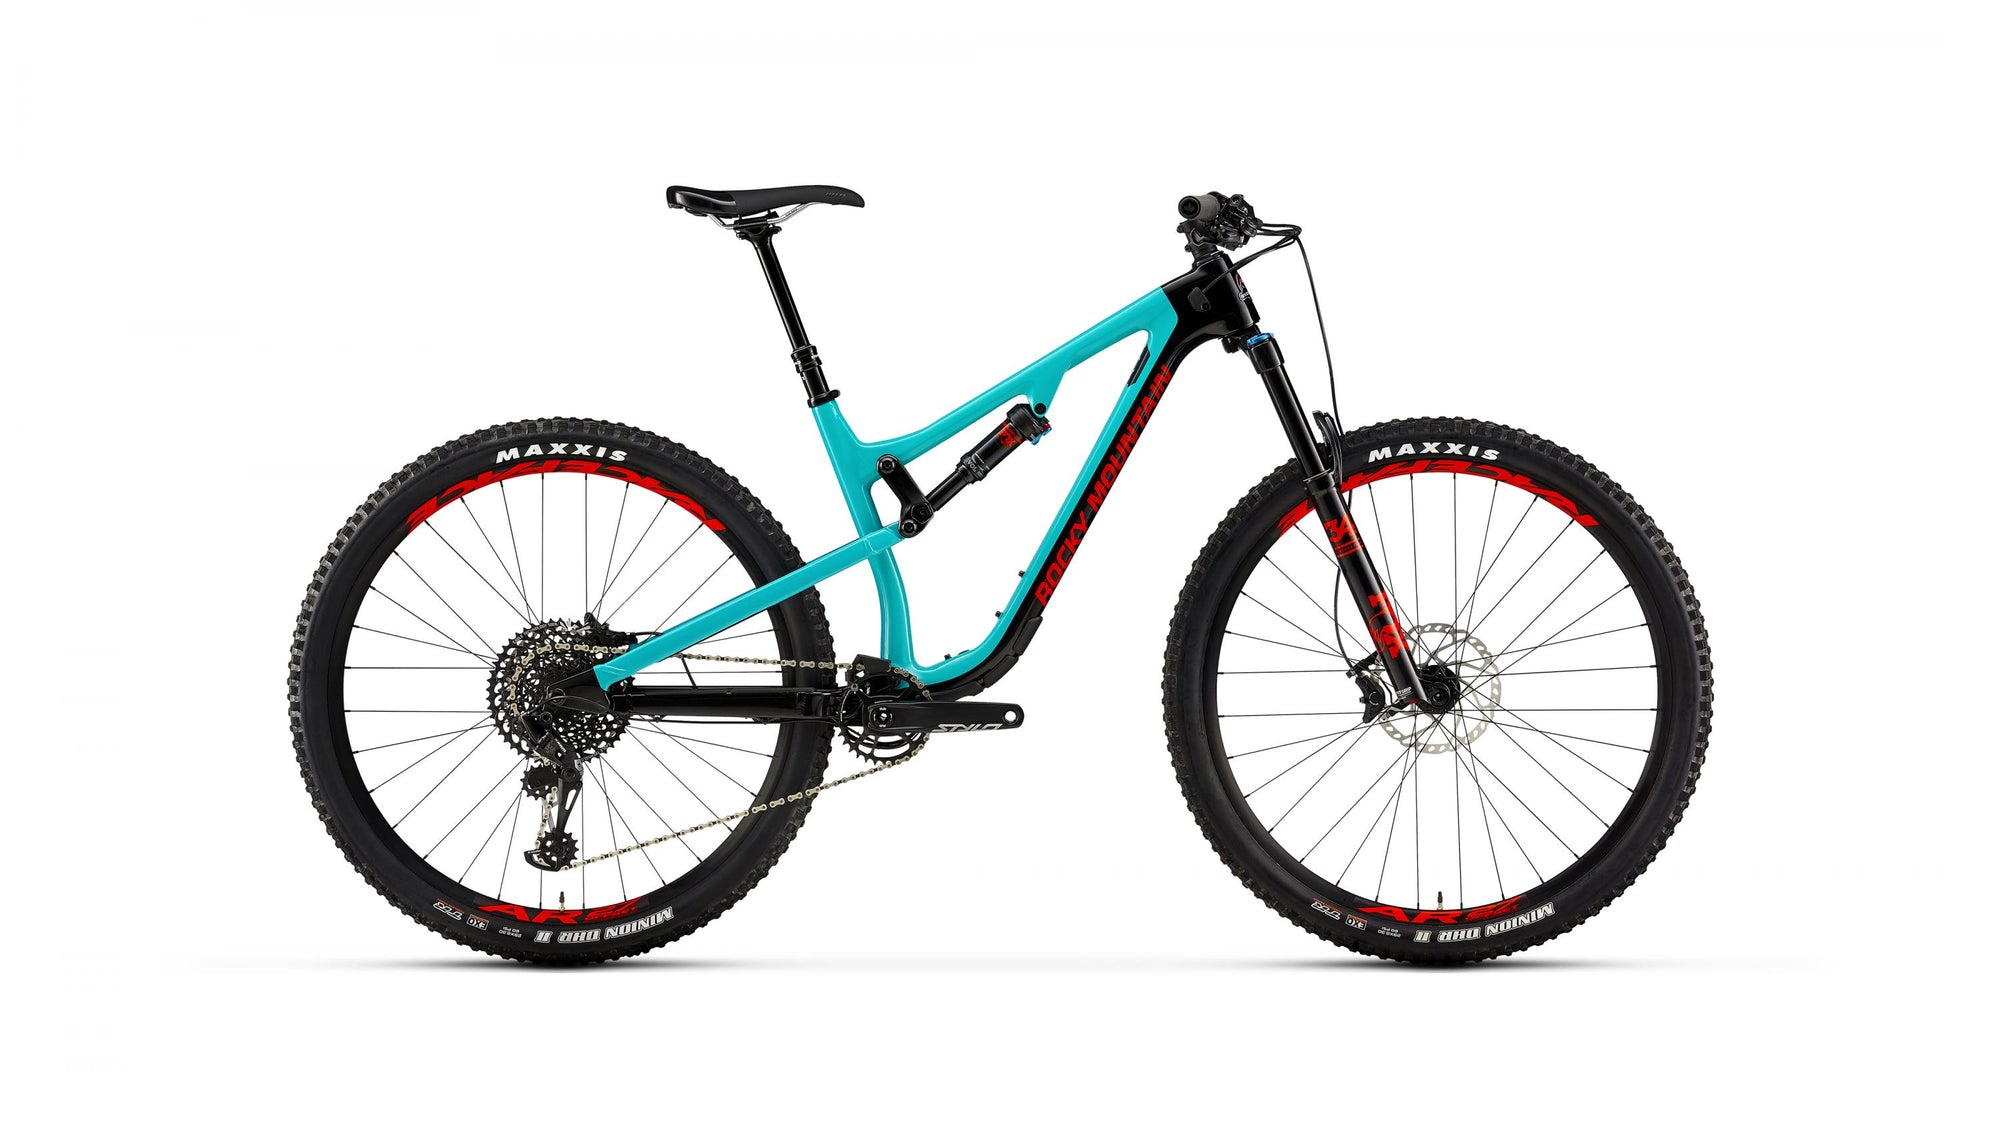 Rocky Mountain Instinct Carbon 50 165 - 172.5cm (SM) - TUNE cycles